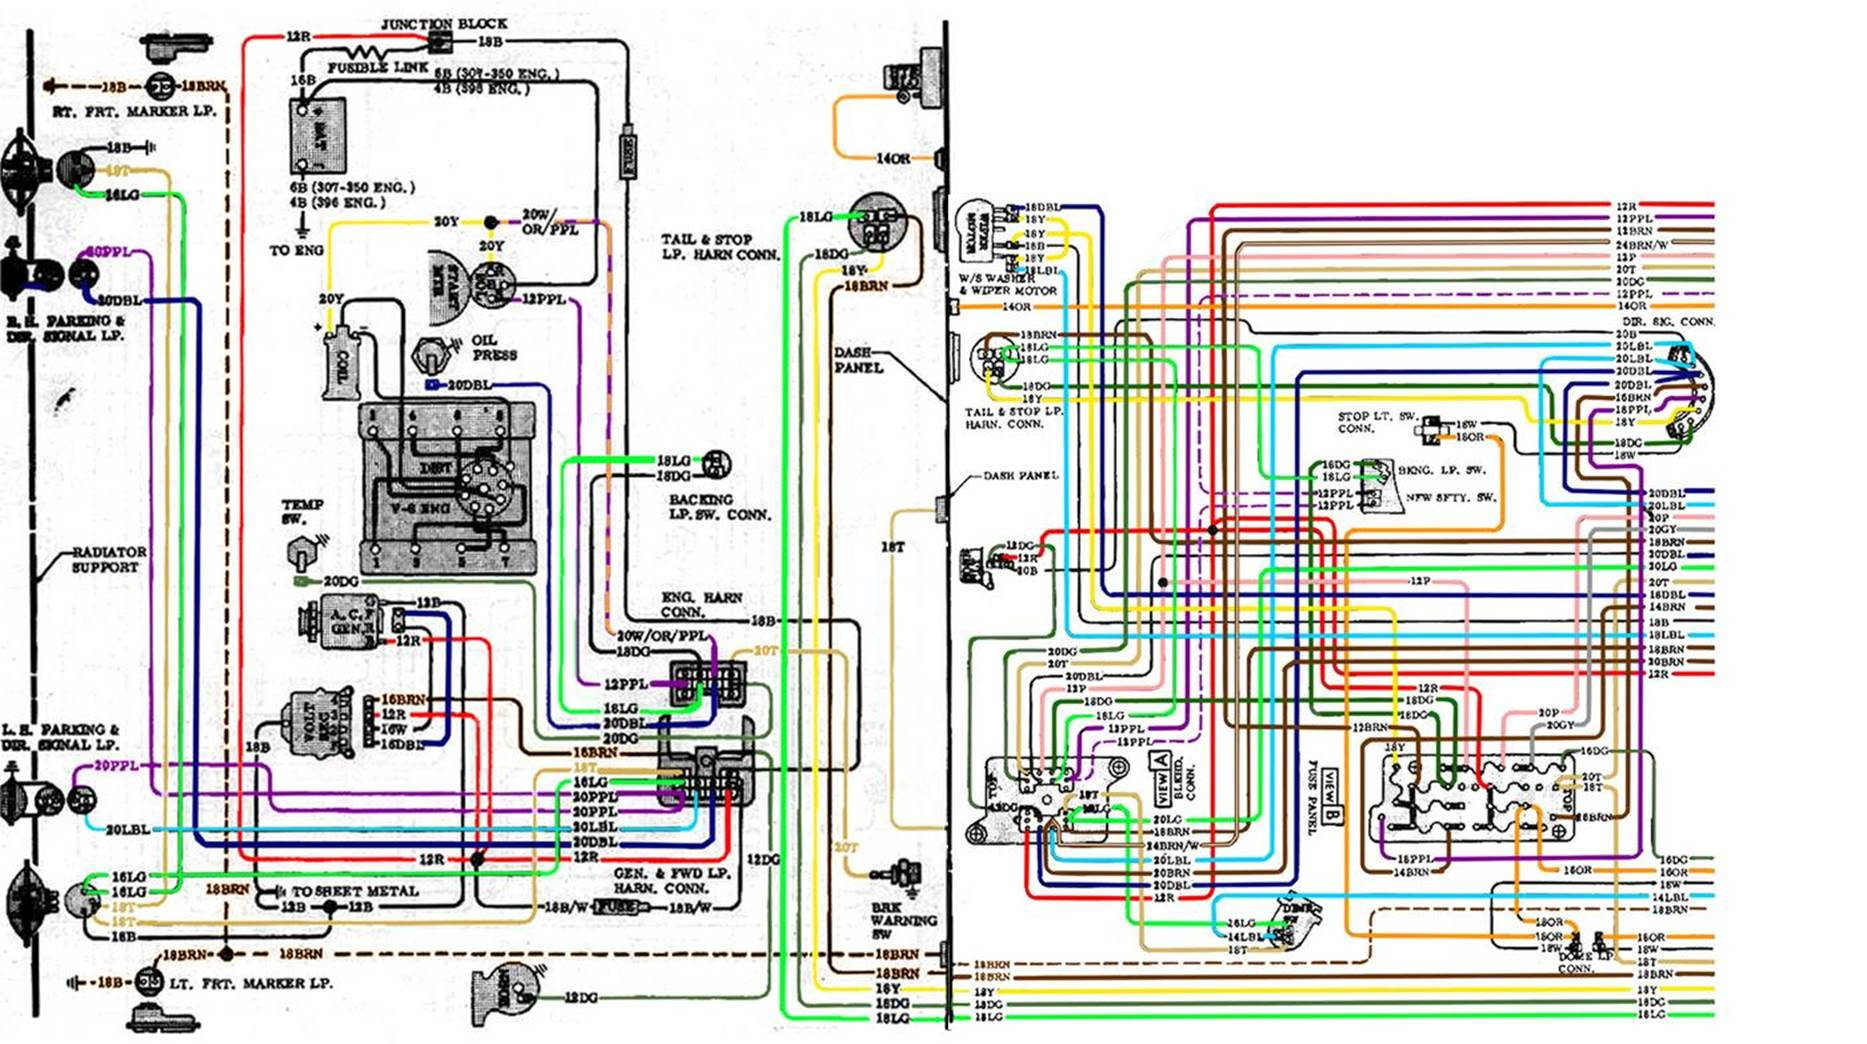 image002 gm wiring diagrams gm wiring diagrams online \u2022 wiring diagrams j  at bakdesigns.co